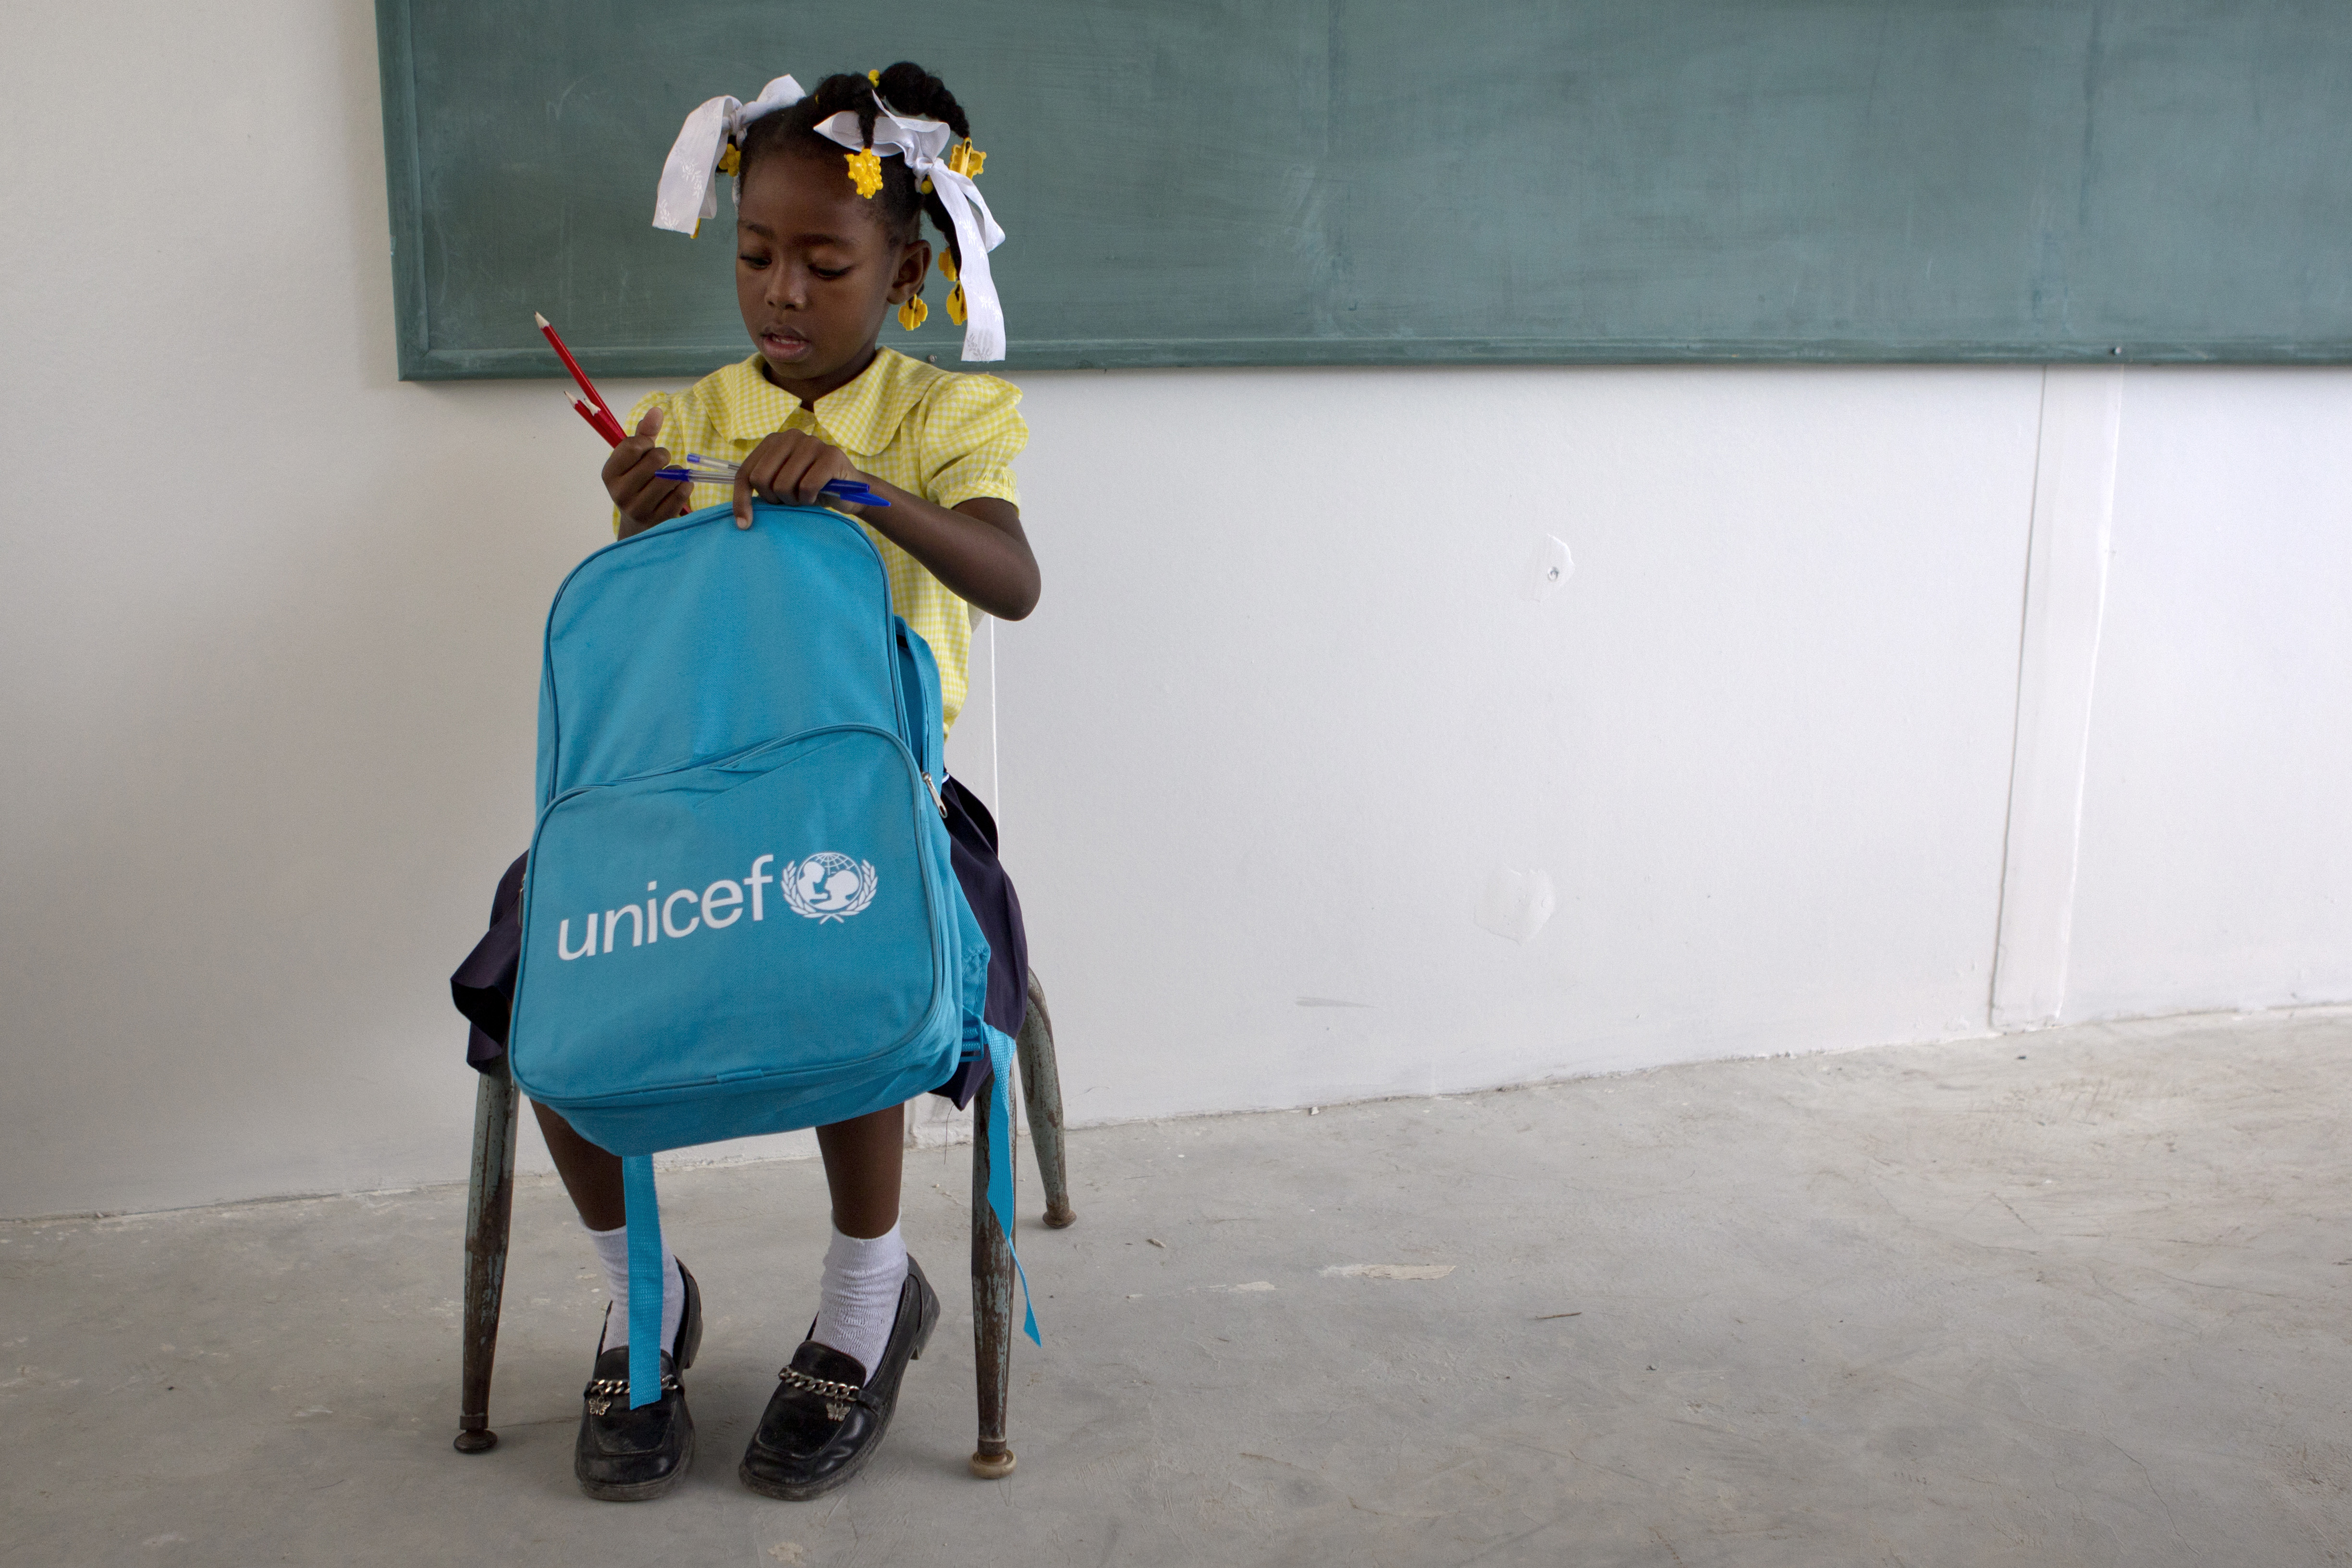 Haitian Girl in School